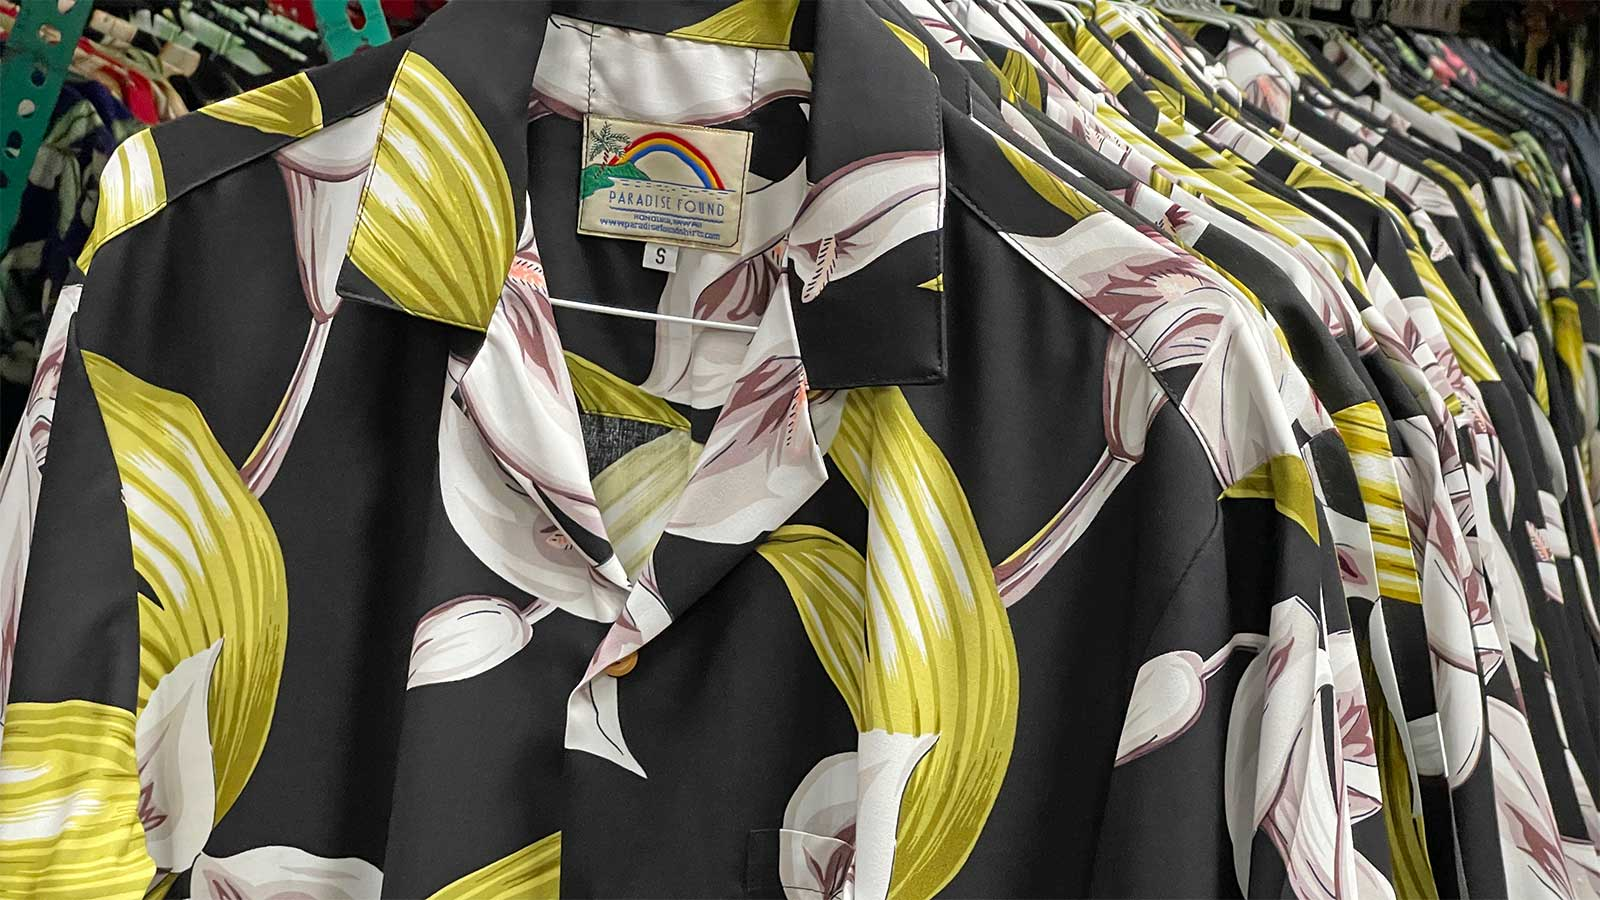 row of Calla Lily shirts at Paradise Found office